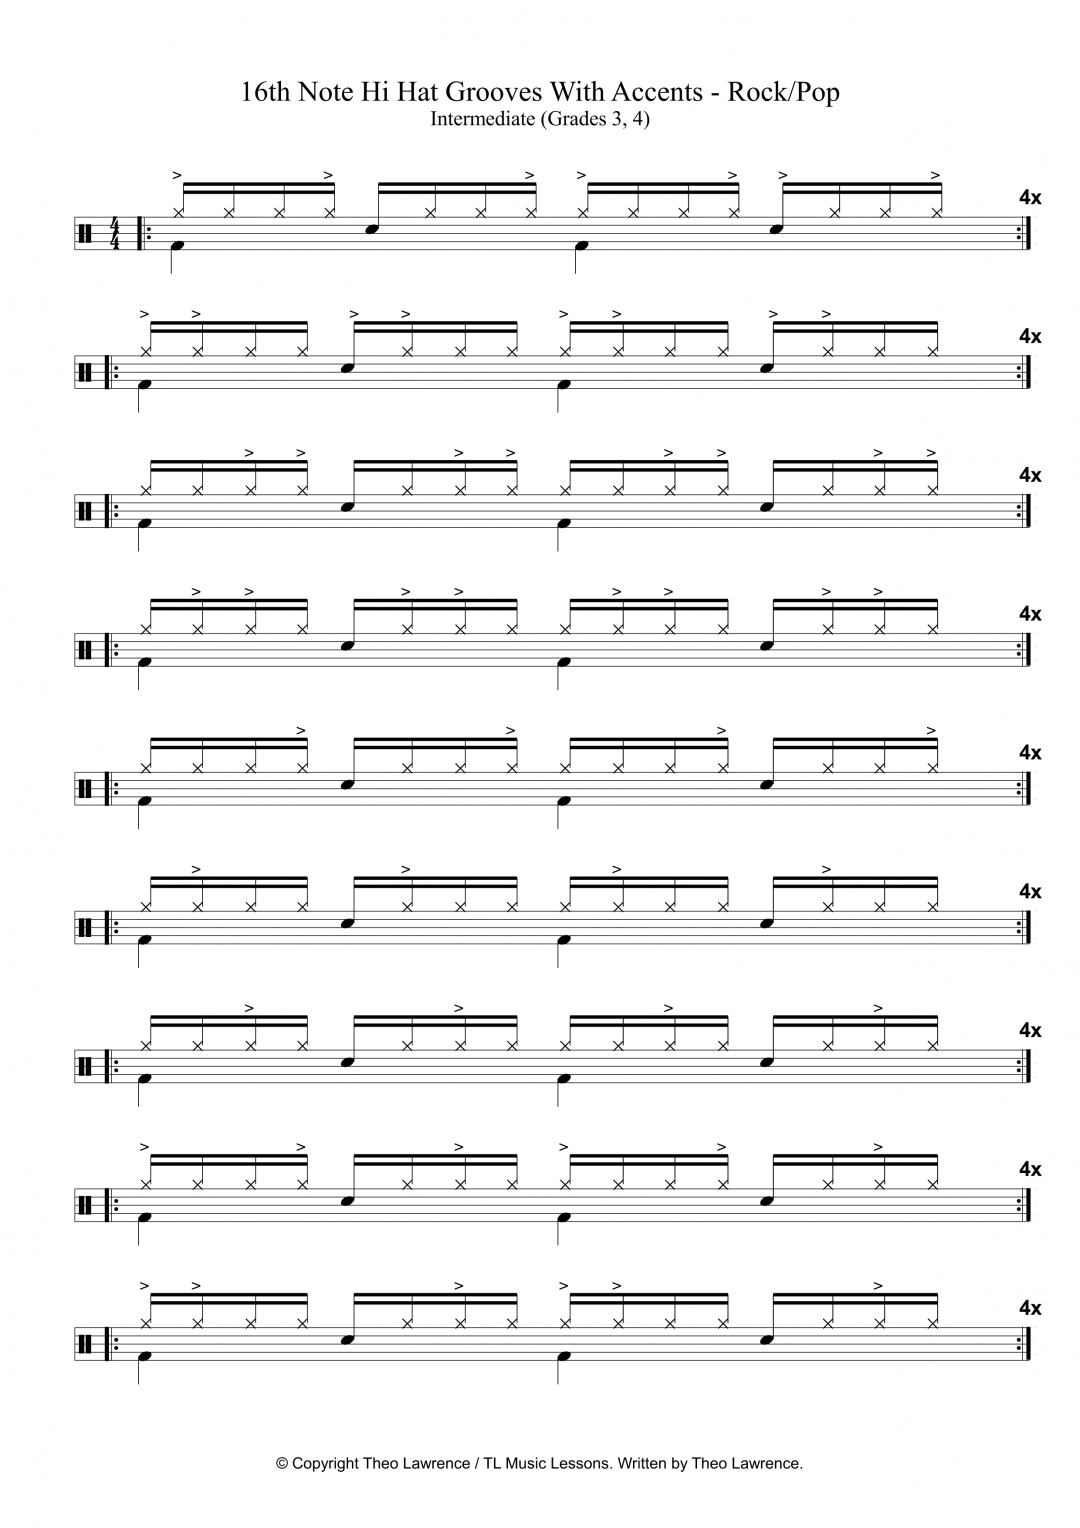 16th Note Hi Hat Grooves With Accents